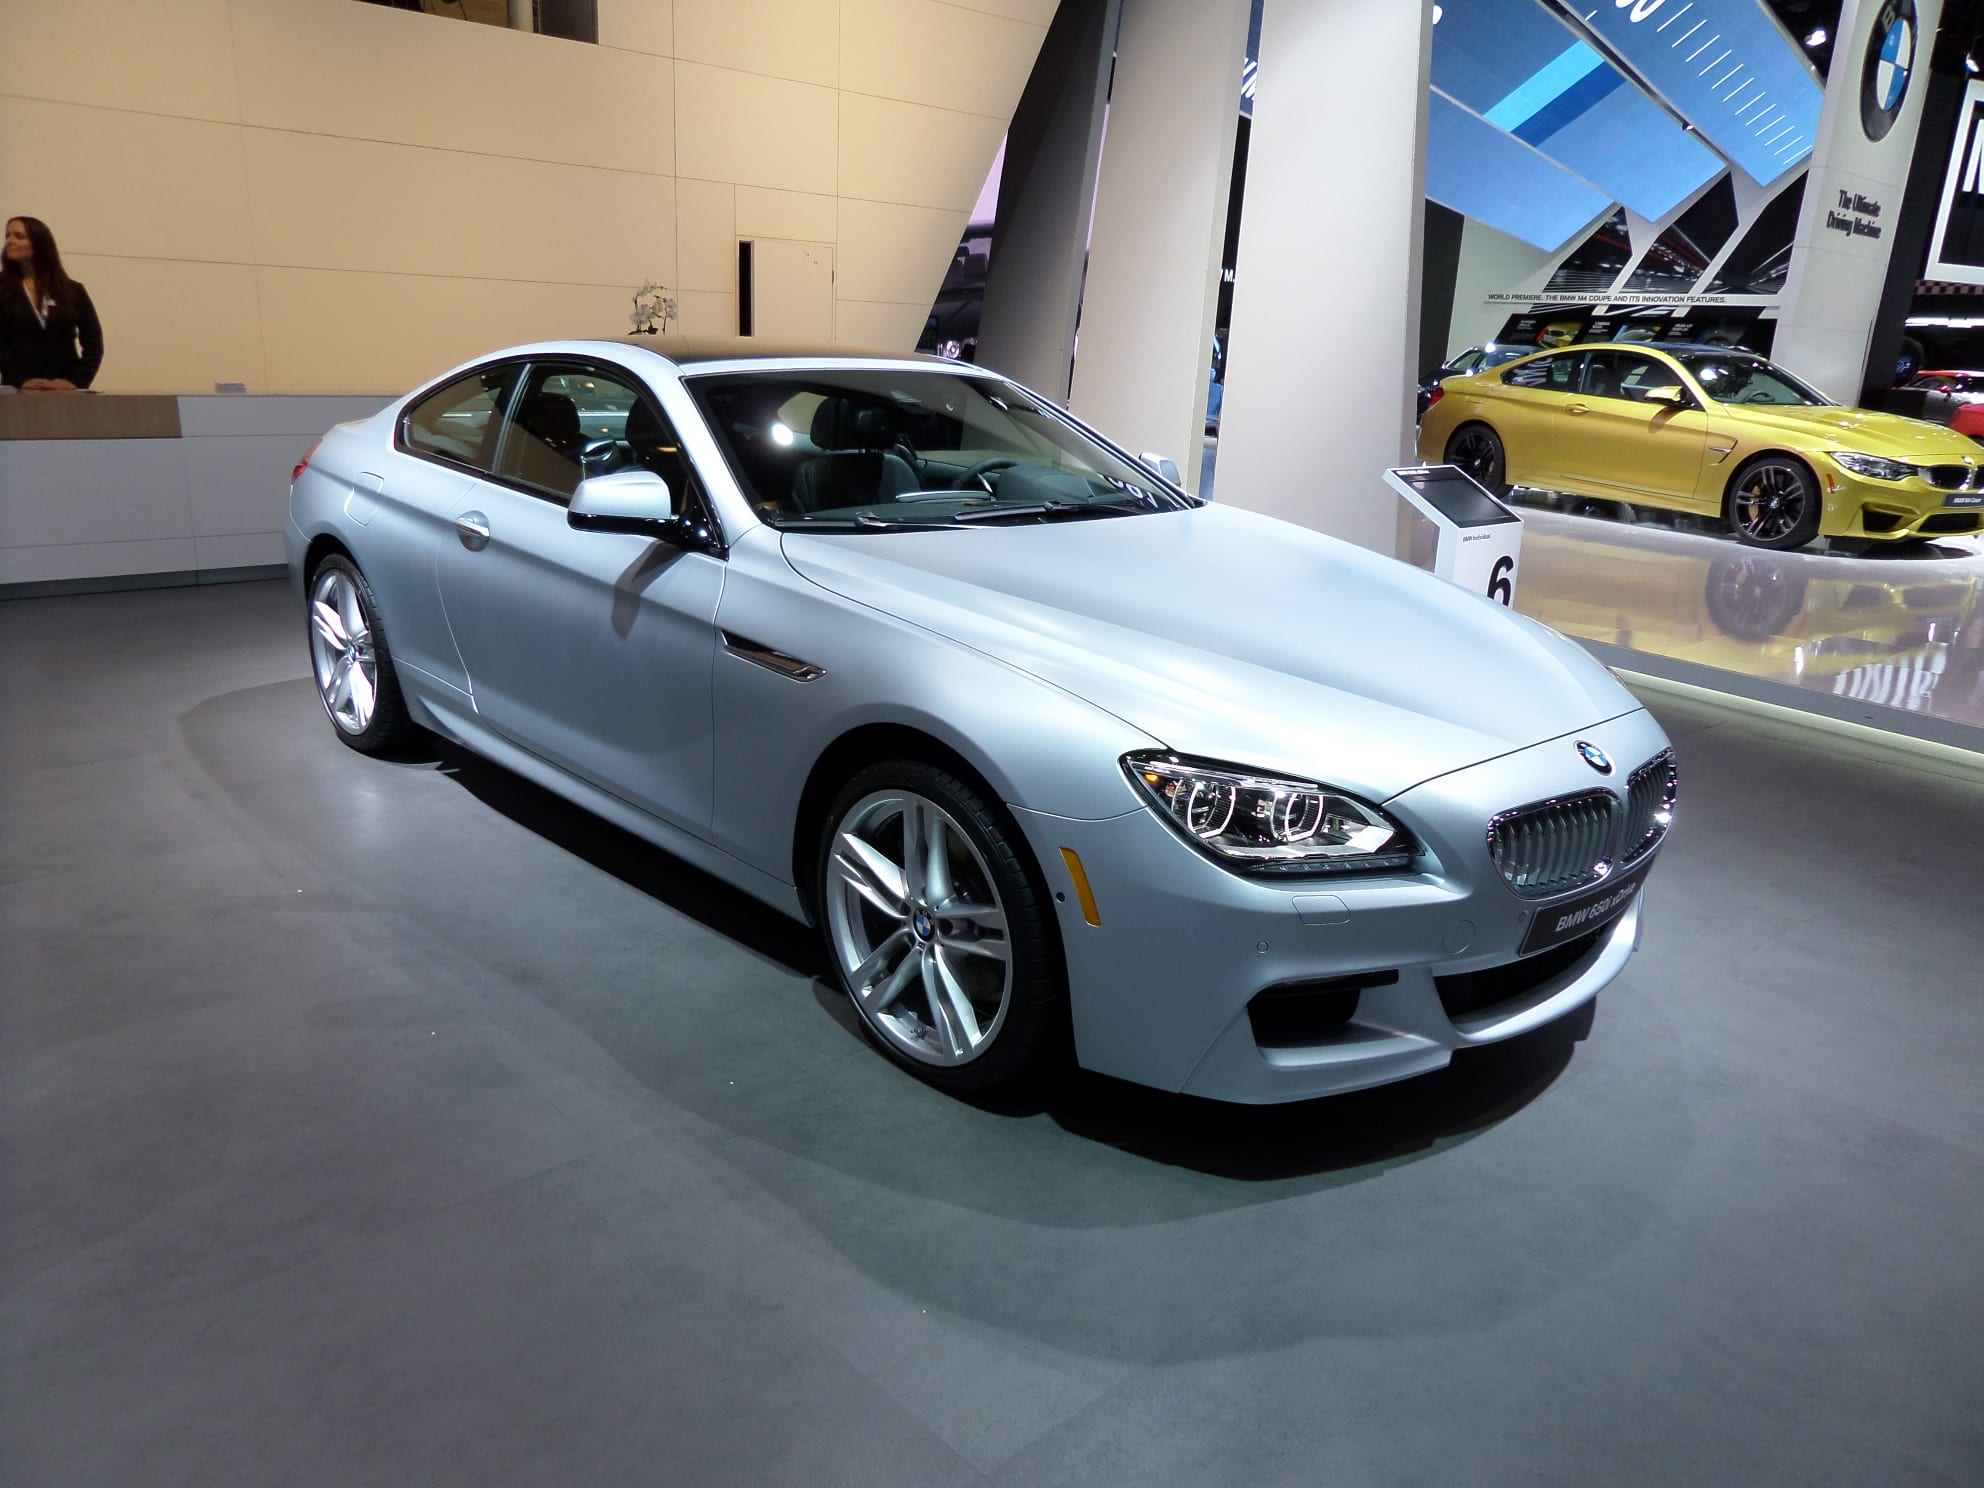 A two-door, silver BMW 650i xDrive. Side view.